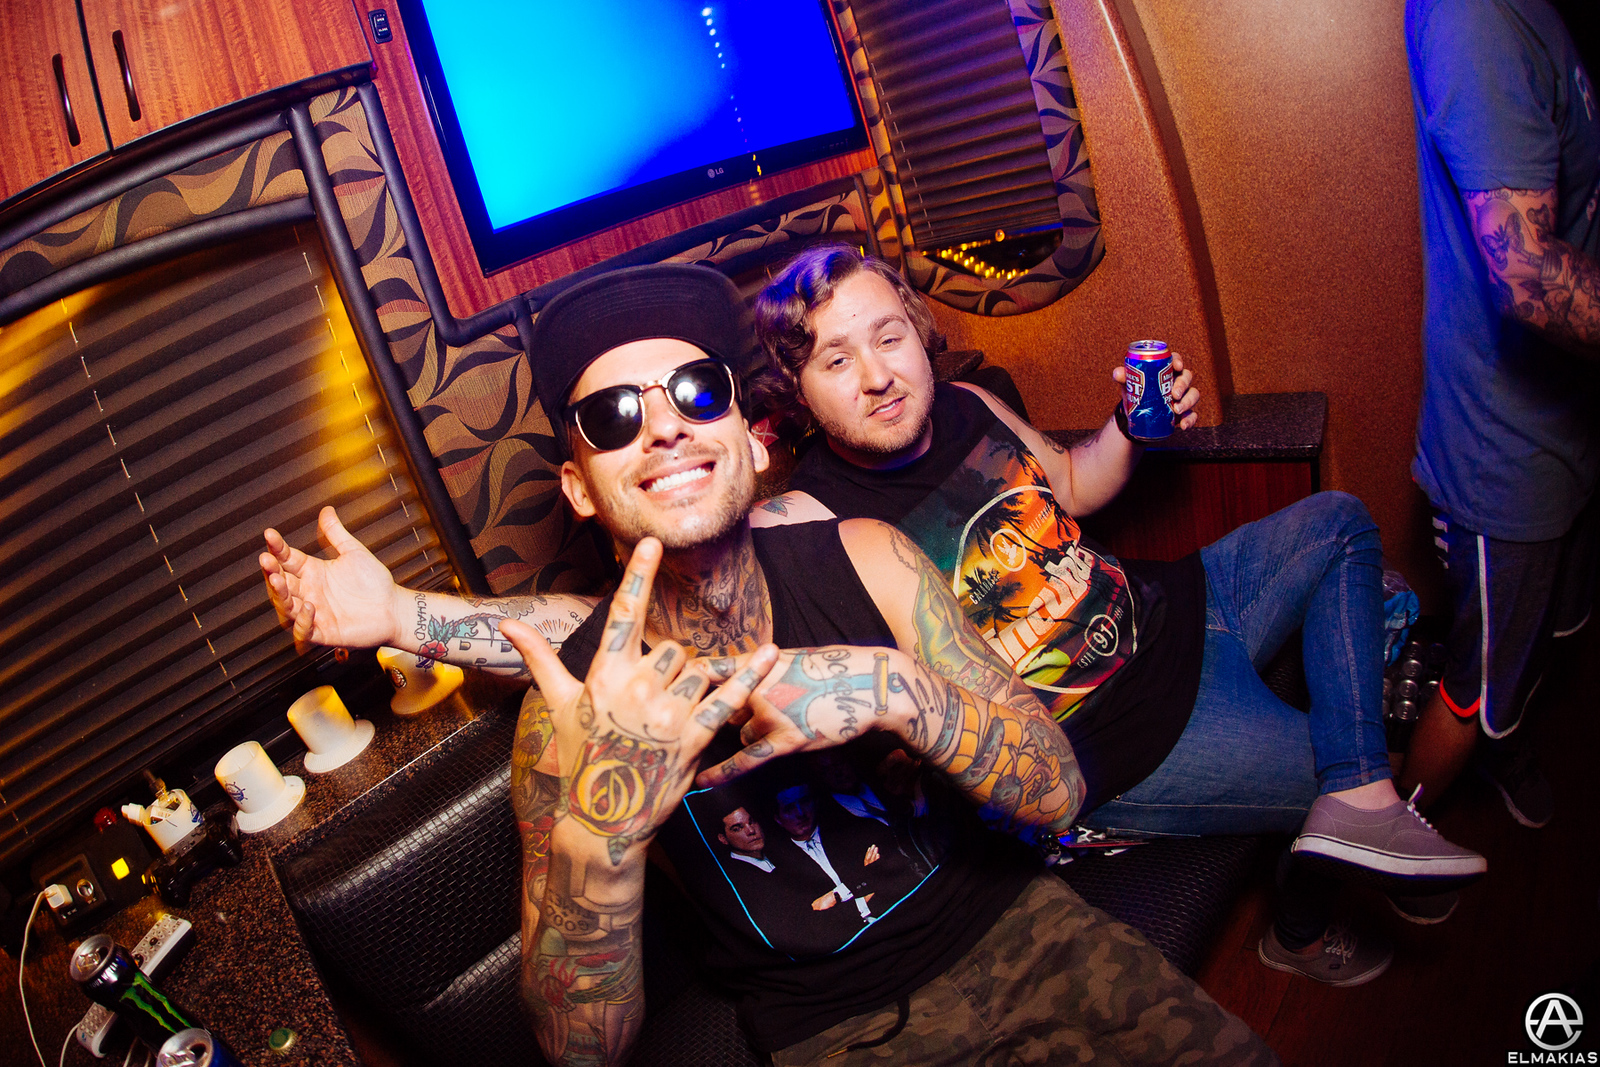 Mike Fuentes of Pierce the Veil and Ryan Burt of The Amity Affliction at Warped Tour 2015 by Adam Elmakias